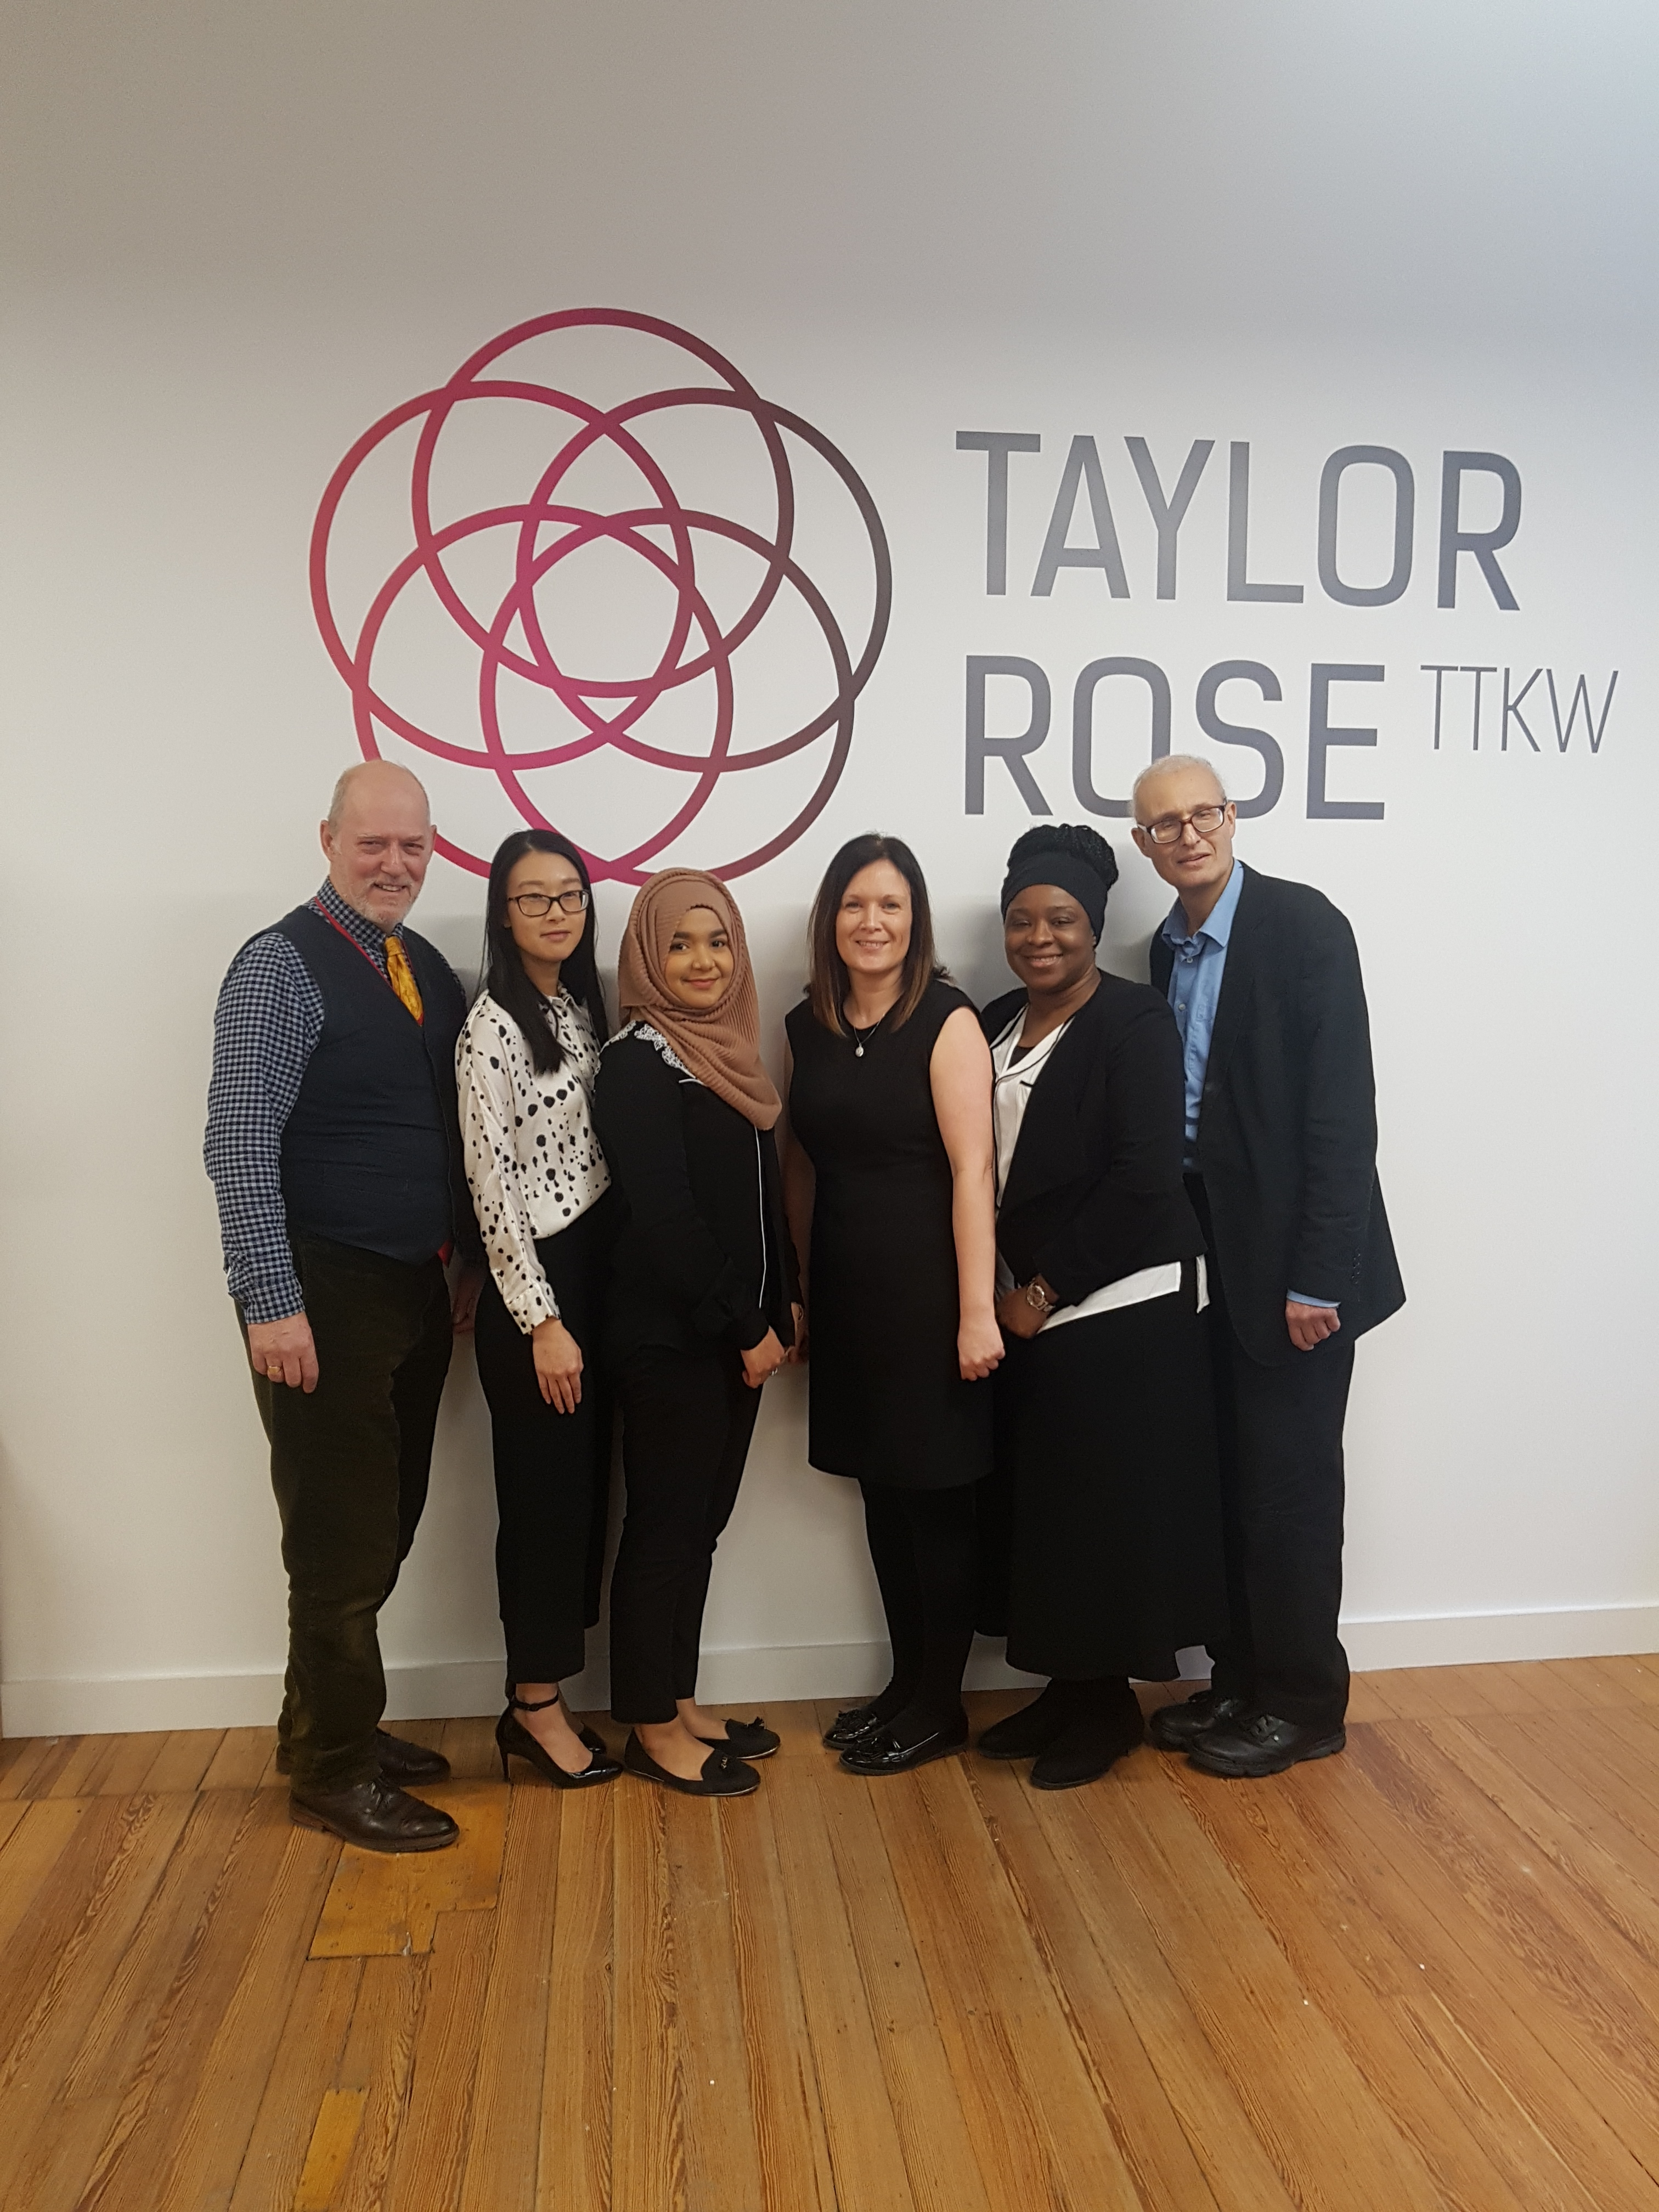 TAYLOR ROSE TTKW LAW FIRM OPENS LIVERPOOL OFFICE